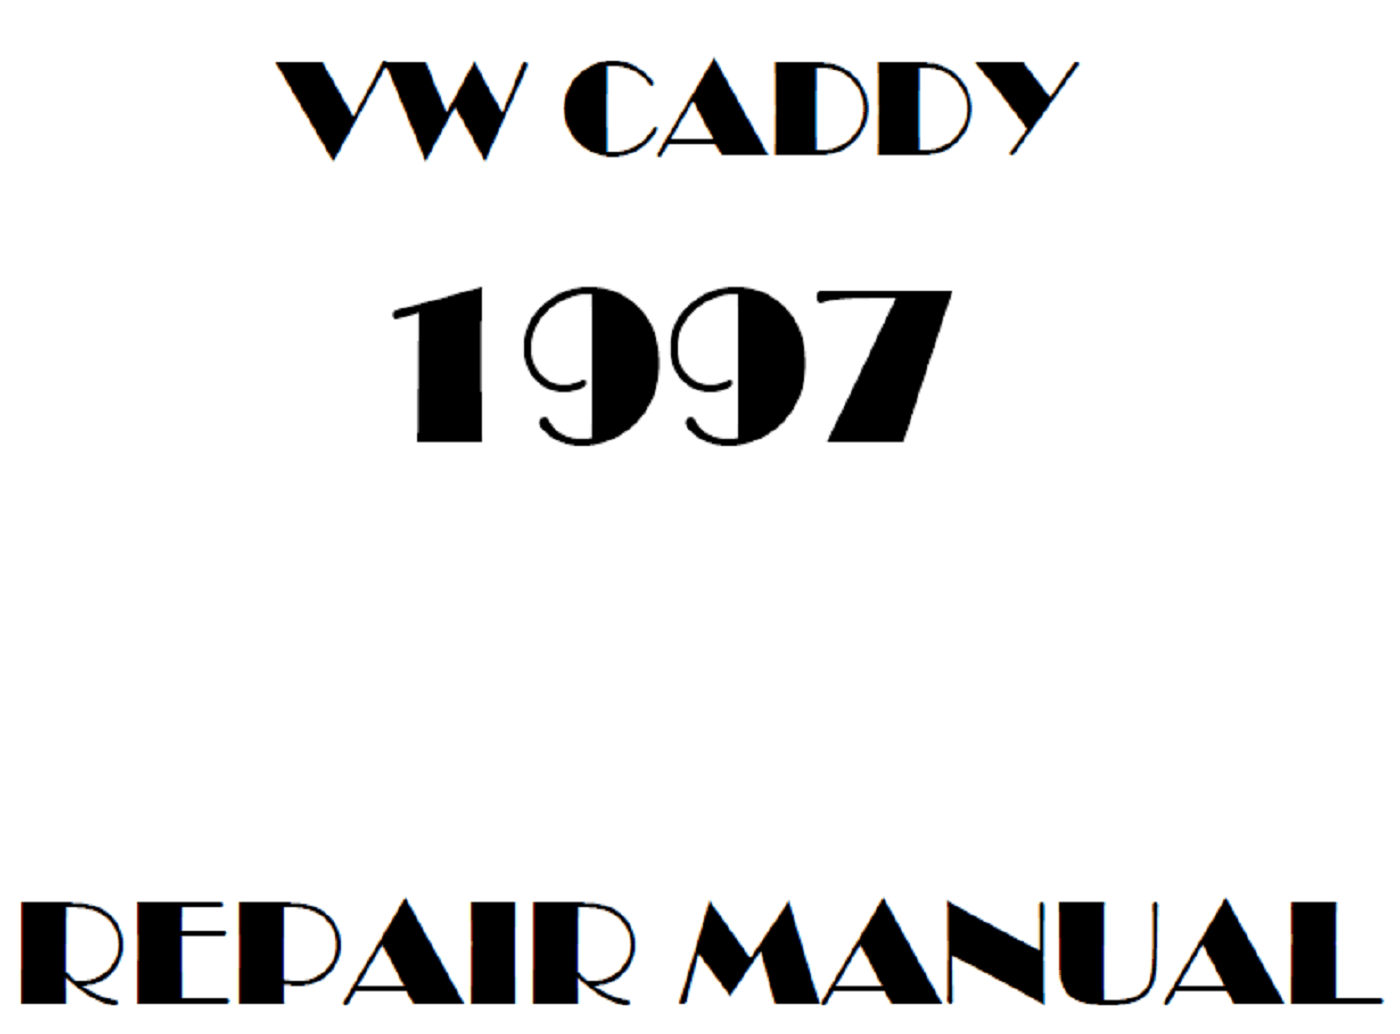 1997 Volkswagen Caddy repair manual